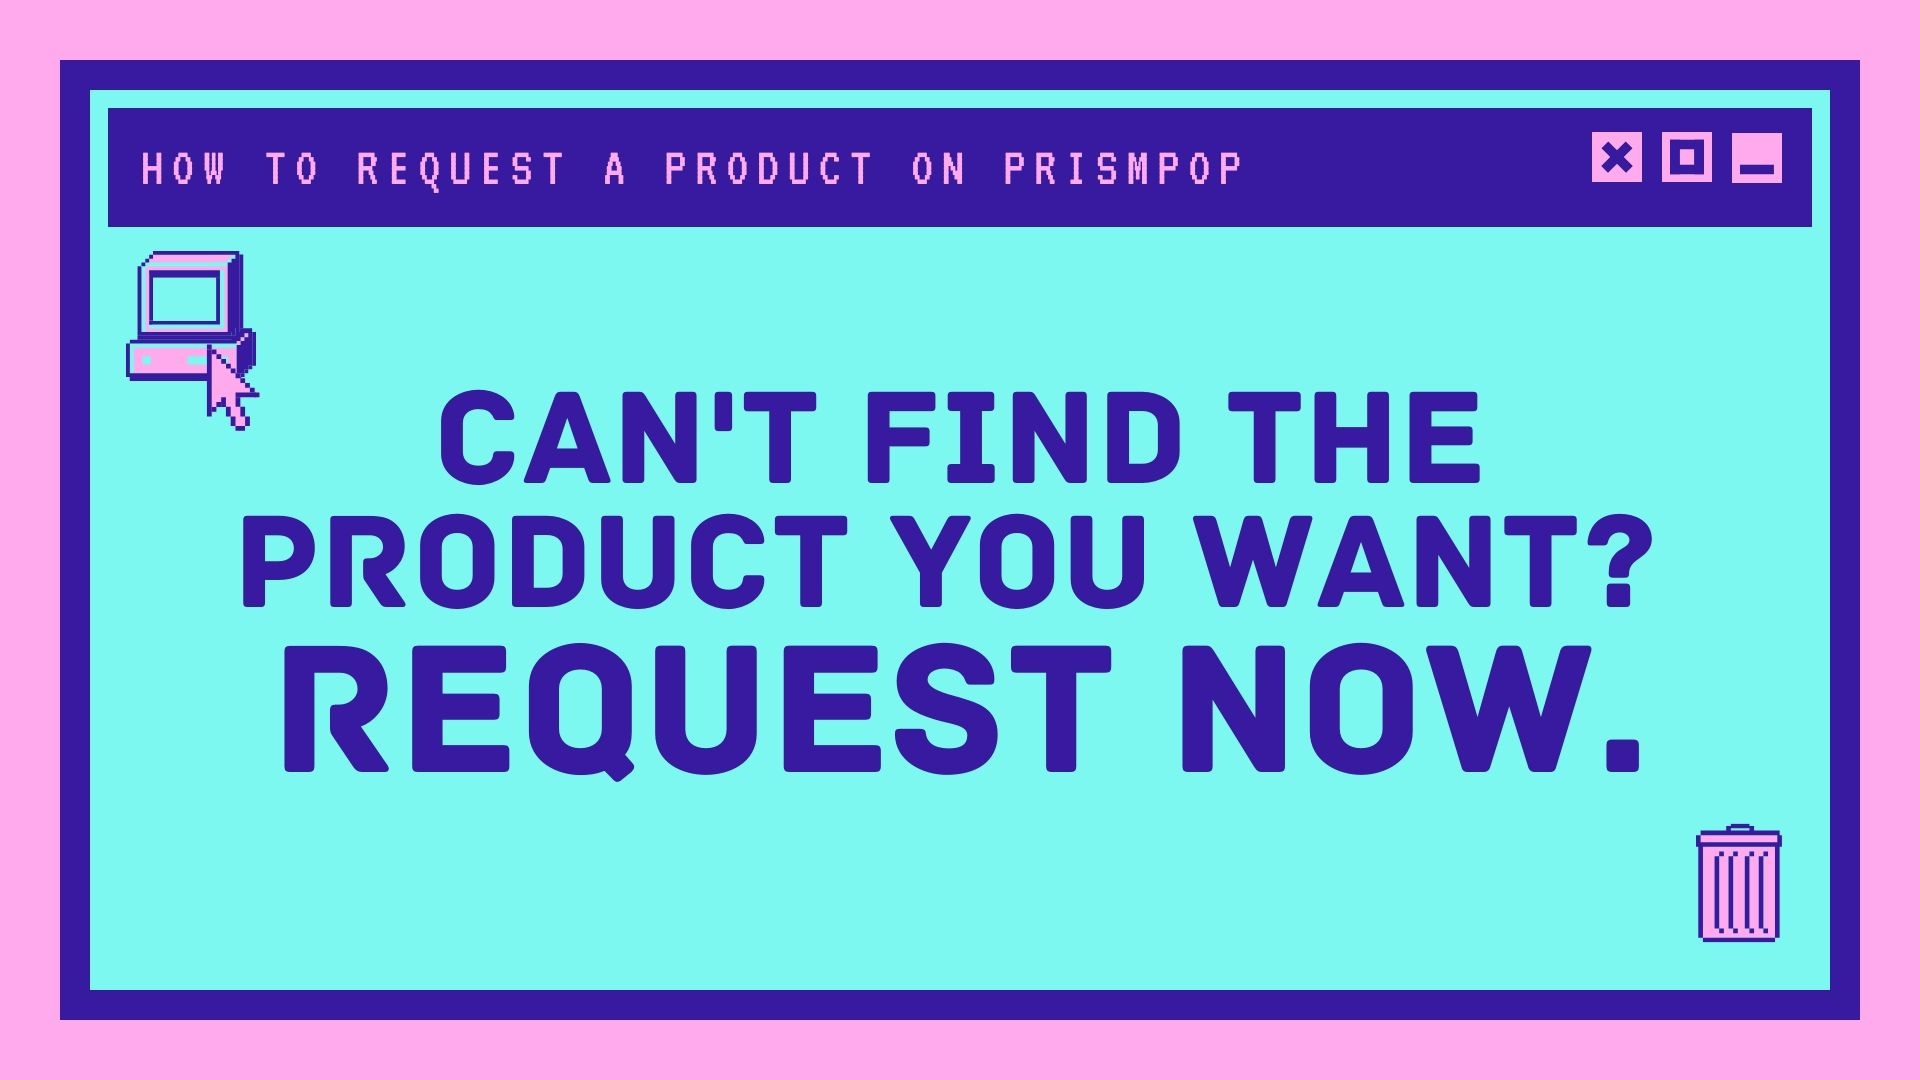 How_to_Prismpop__Request_a_Product.jpg